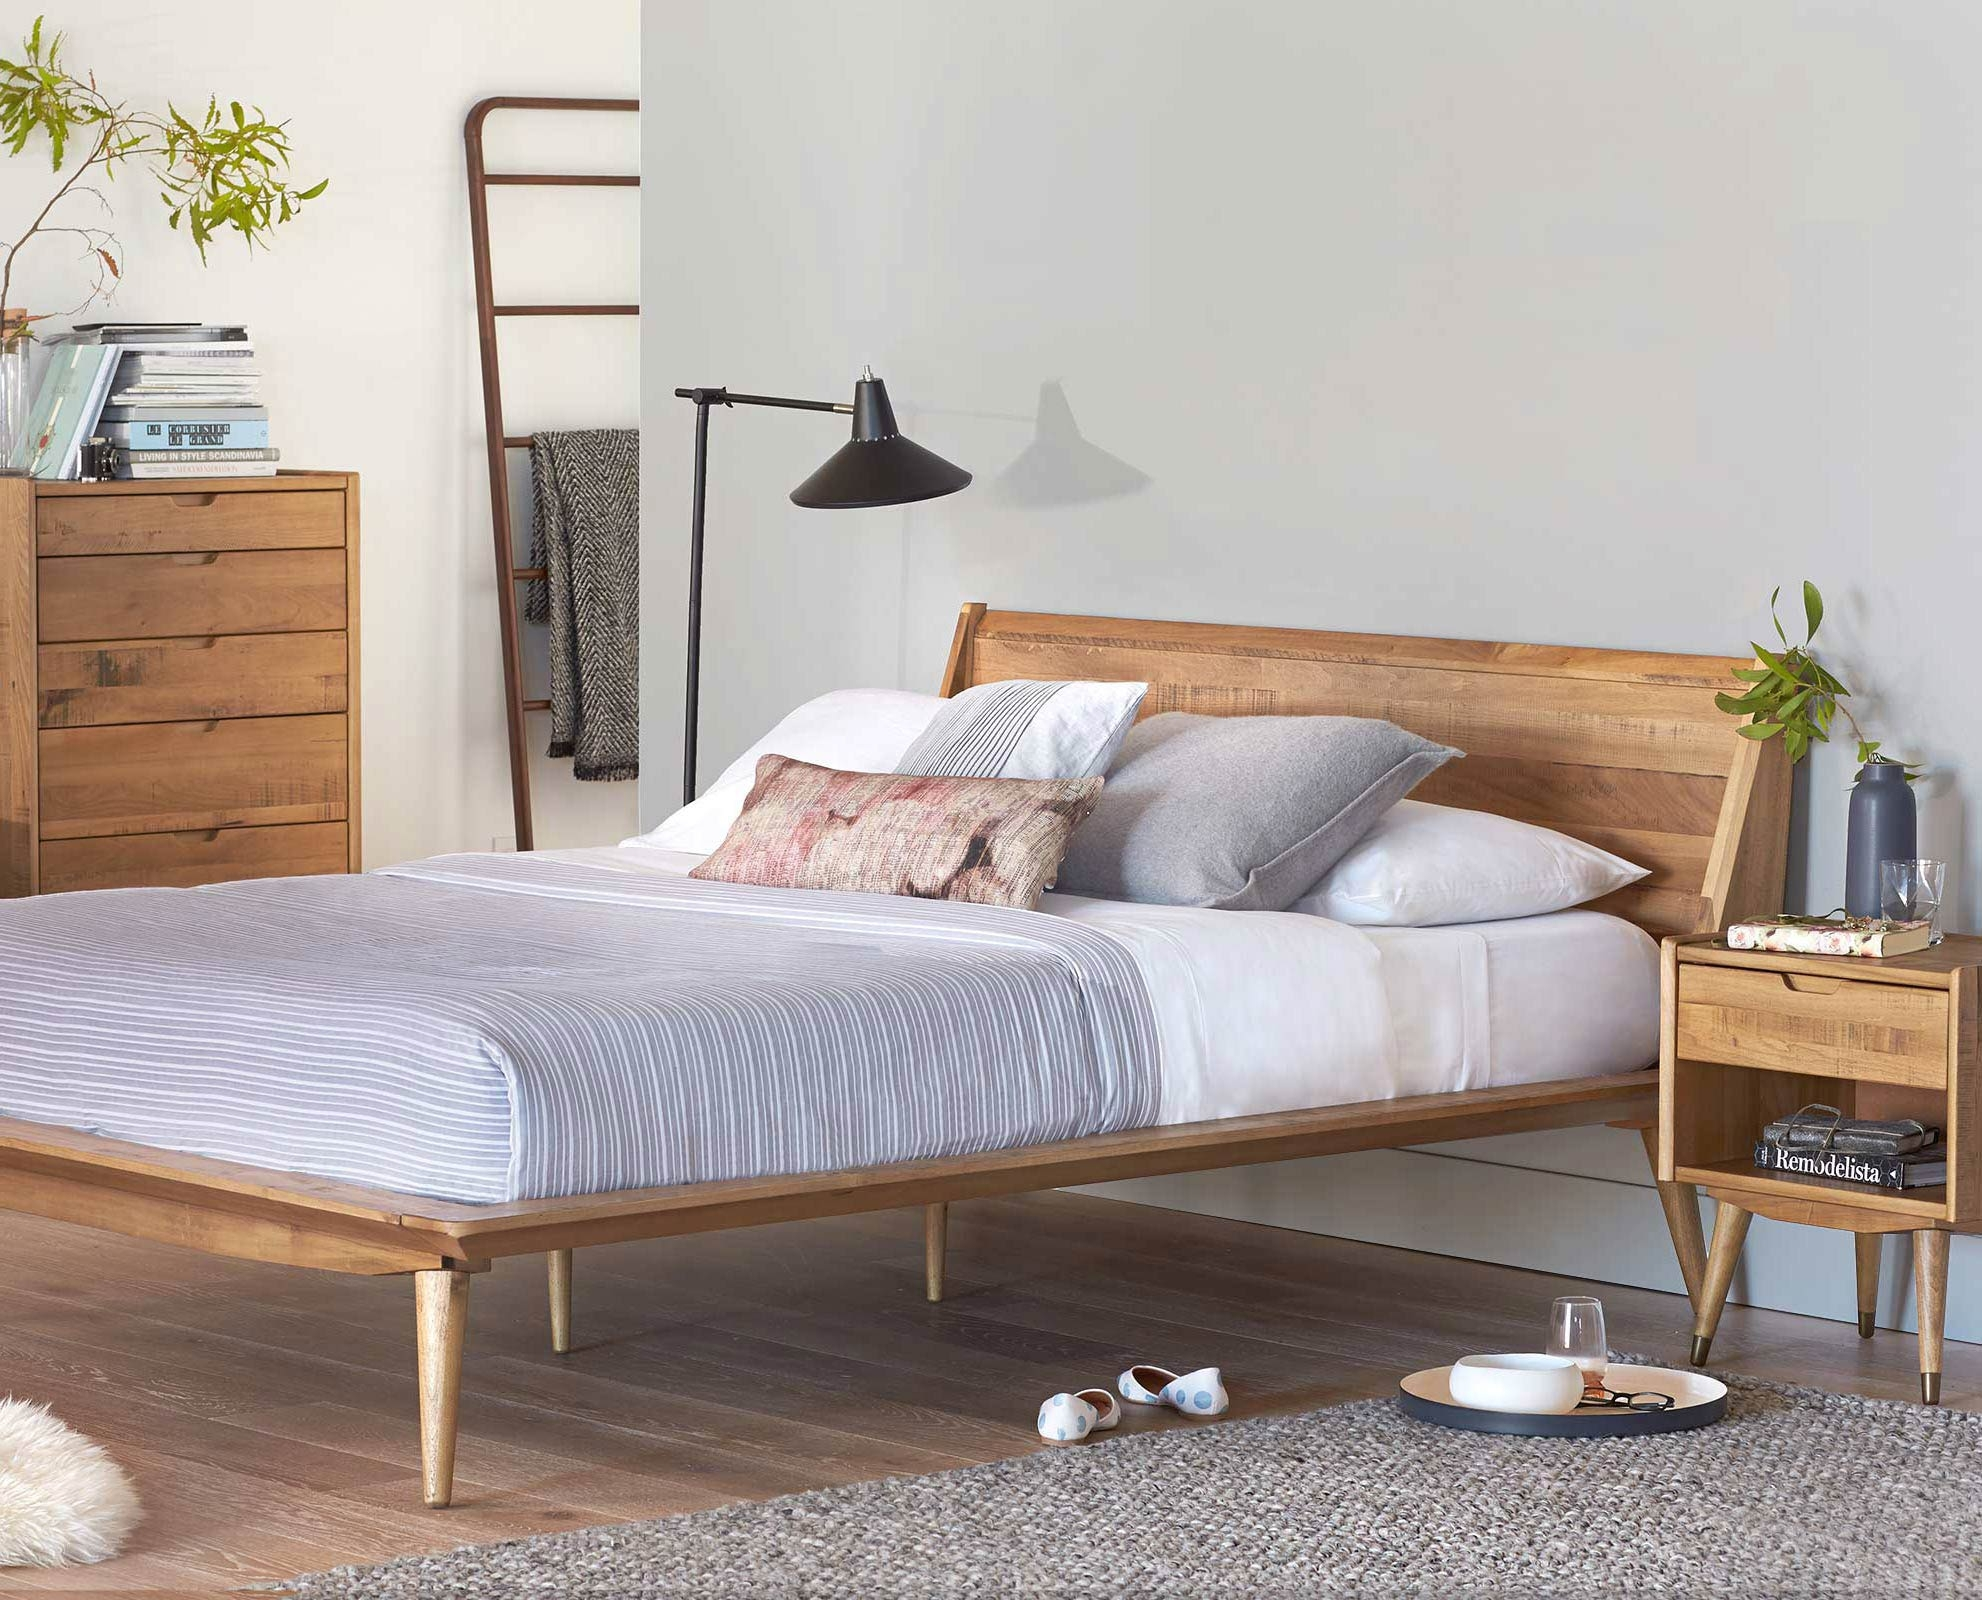 Permalink to Dania Bed Frame